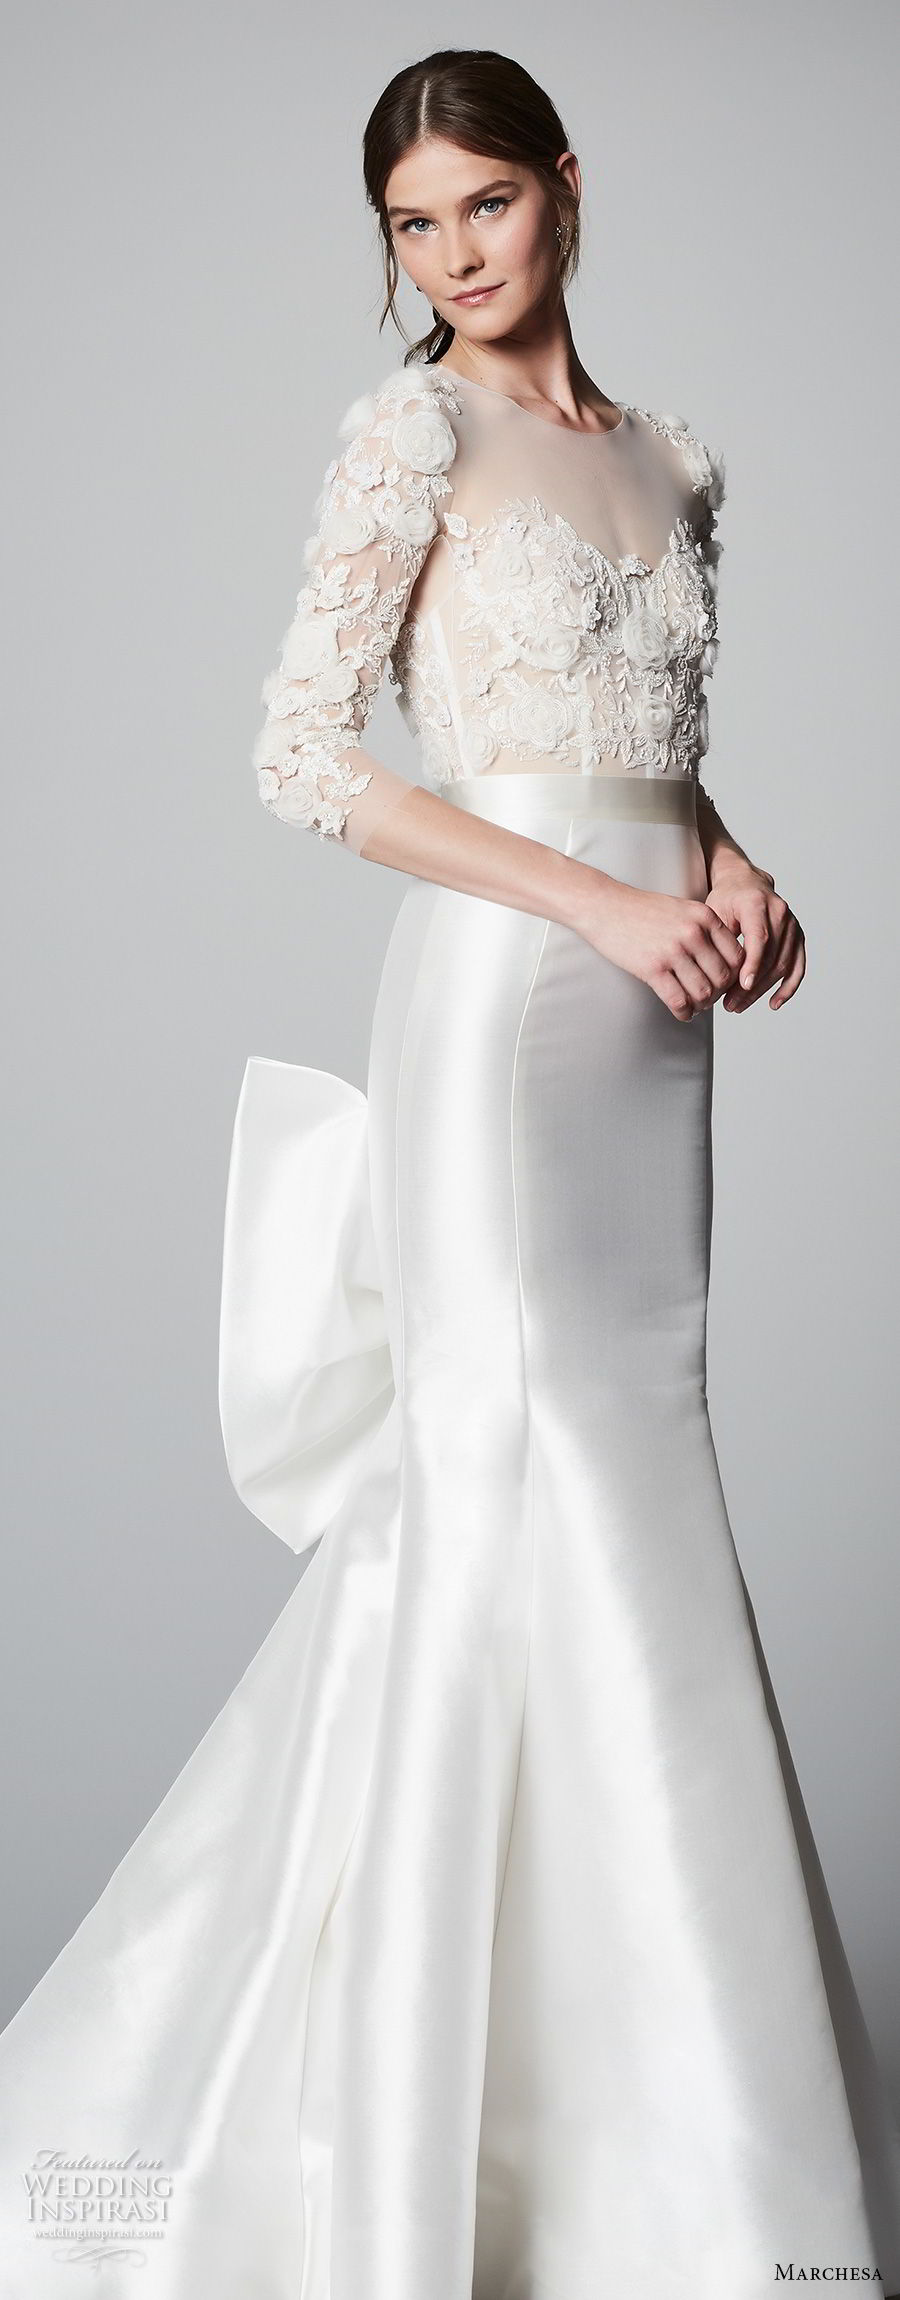 marchesa spring 2018 bridal three quarter sleeves sheer boat sweetheart neckline heavily embellished bodice elegant glamorous fit and flare wedding dress chapel train (01) sdv